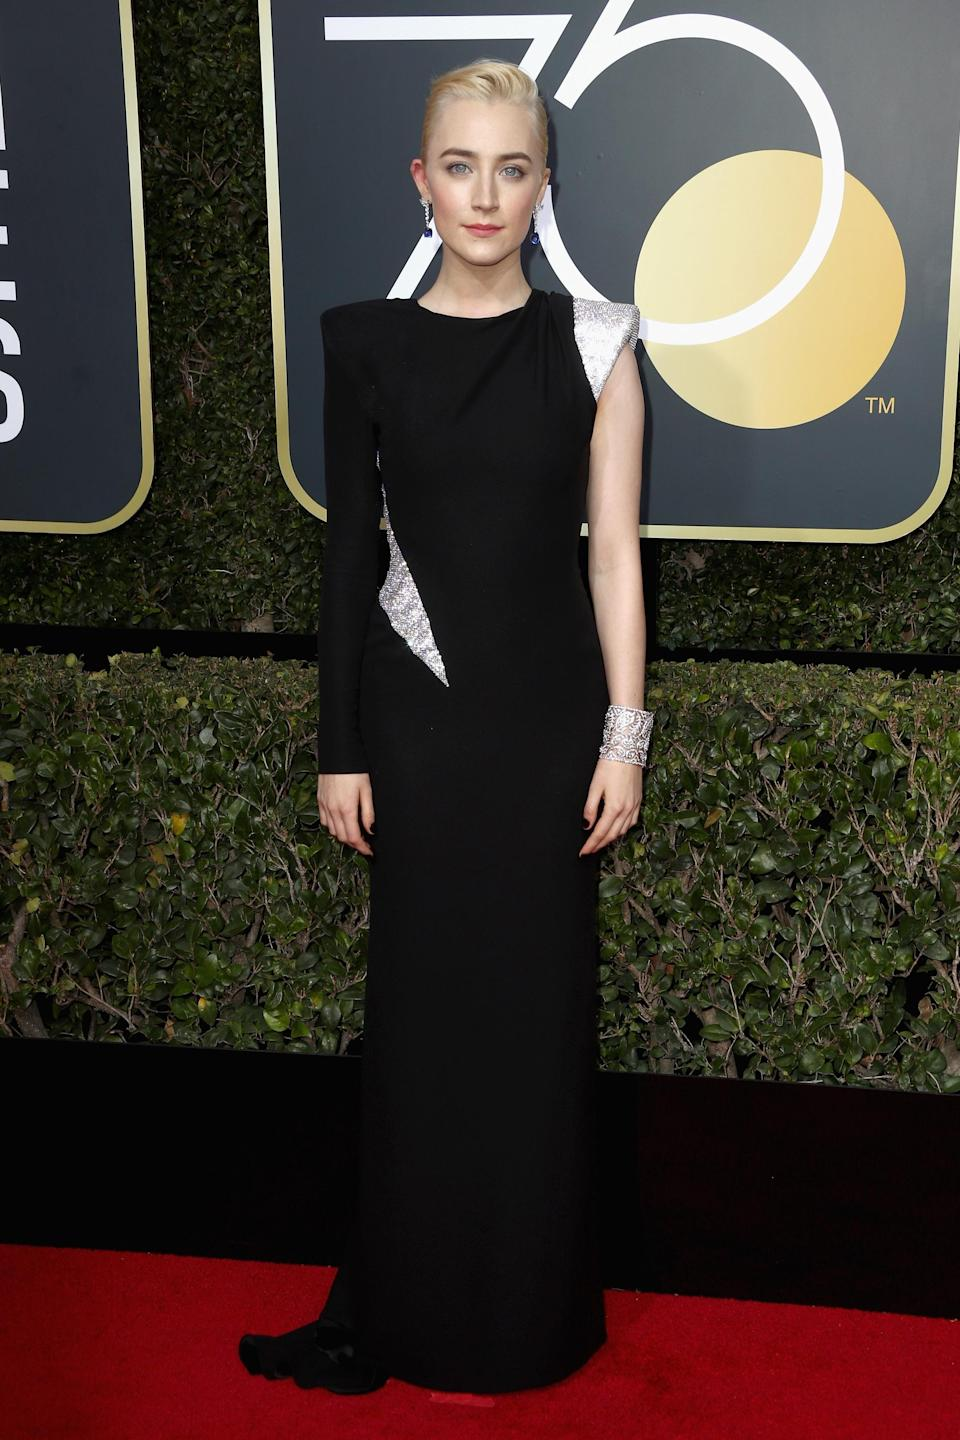 """<strong><h2>2018</h2></strong><br>Hands down, 2018 was Saoirse Ronan's year. Not only did she win her very first Golden Globe for a stunning performance in <em>Lady Bird</em>, but she also shut the red carpet down in this stunning black and silver Atelier Versace gown.<br><br><em>Saoirse Ronan in Atelier Versace.</em><span class=""""copyright"""">Photo: Frederick M. Brown/Getty Images.</span>"""